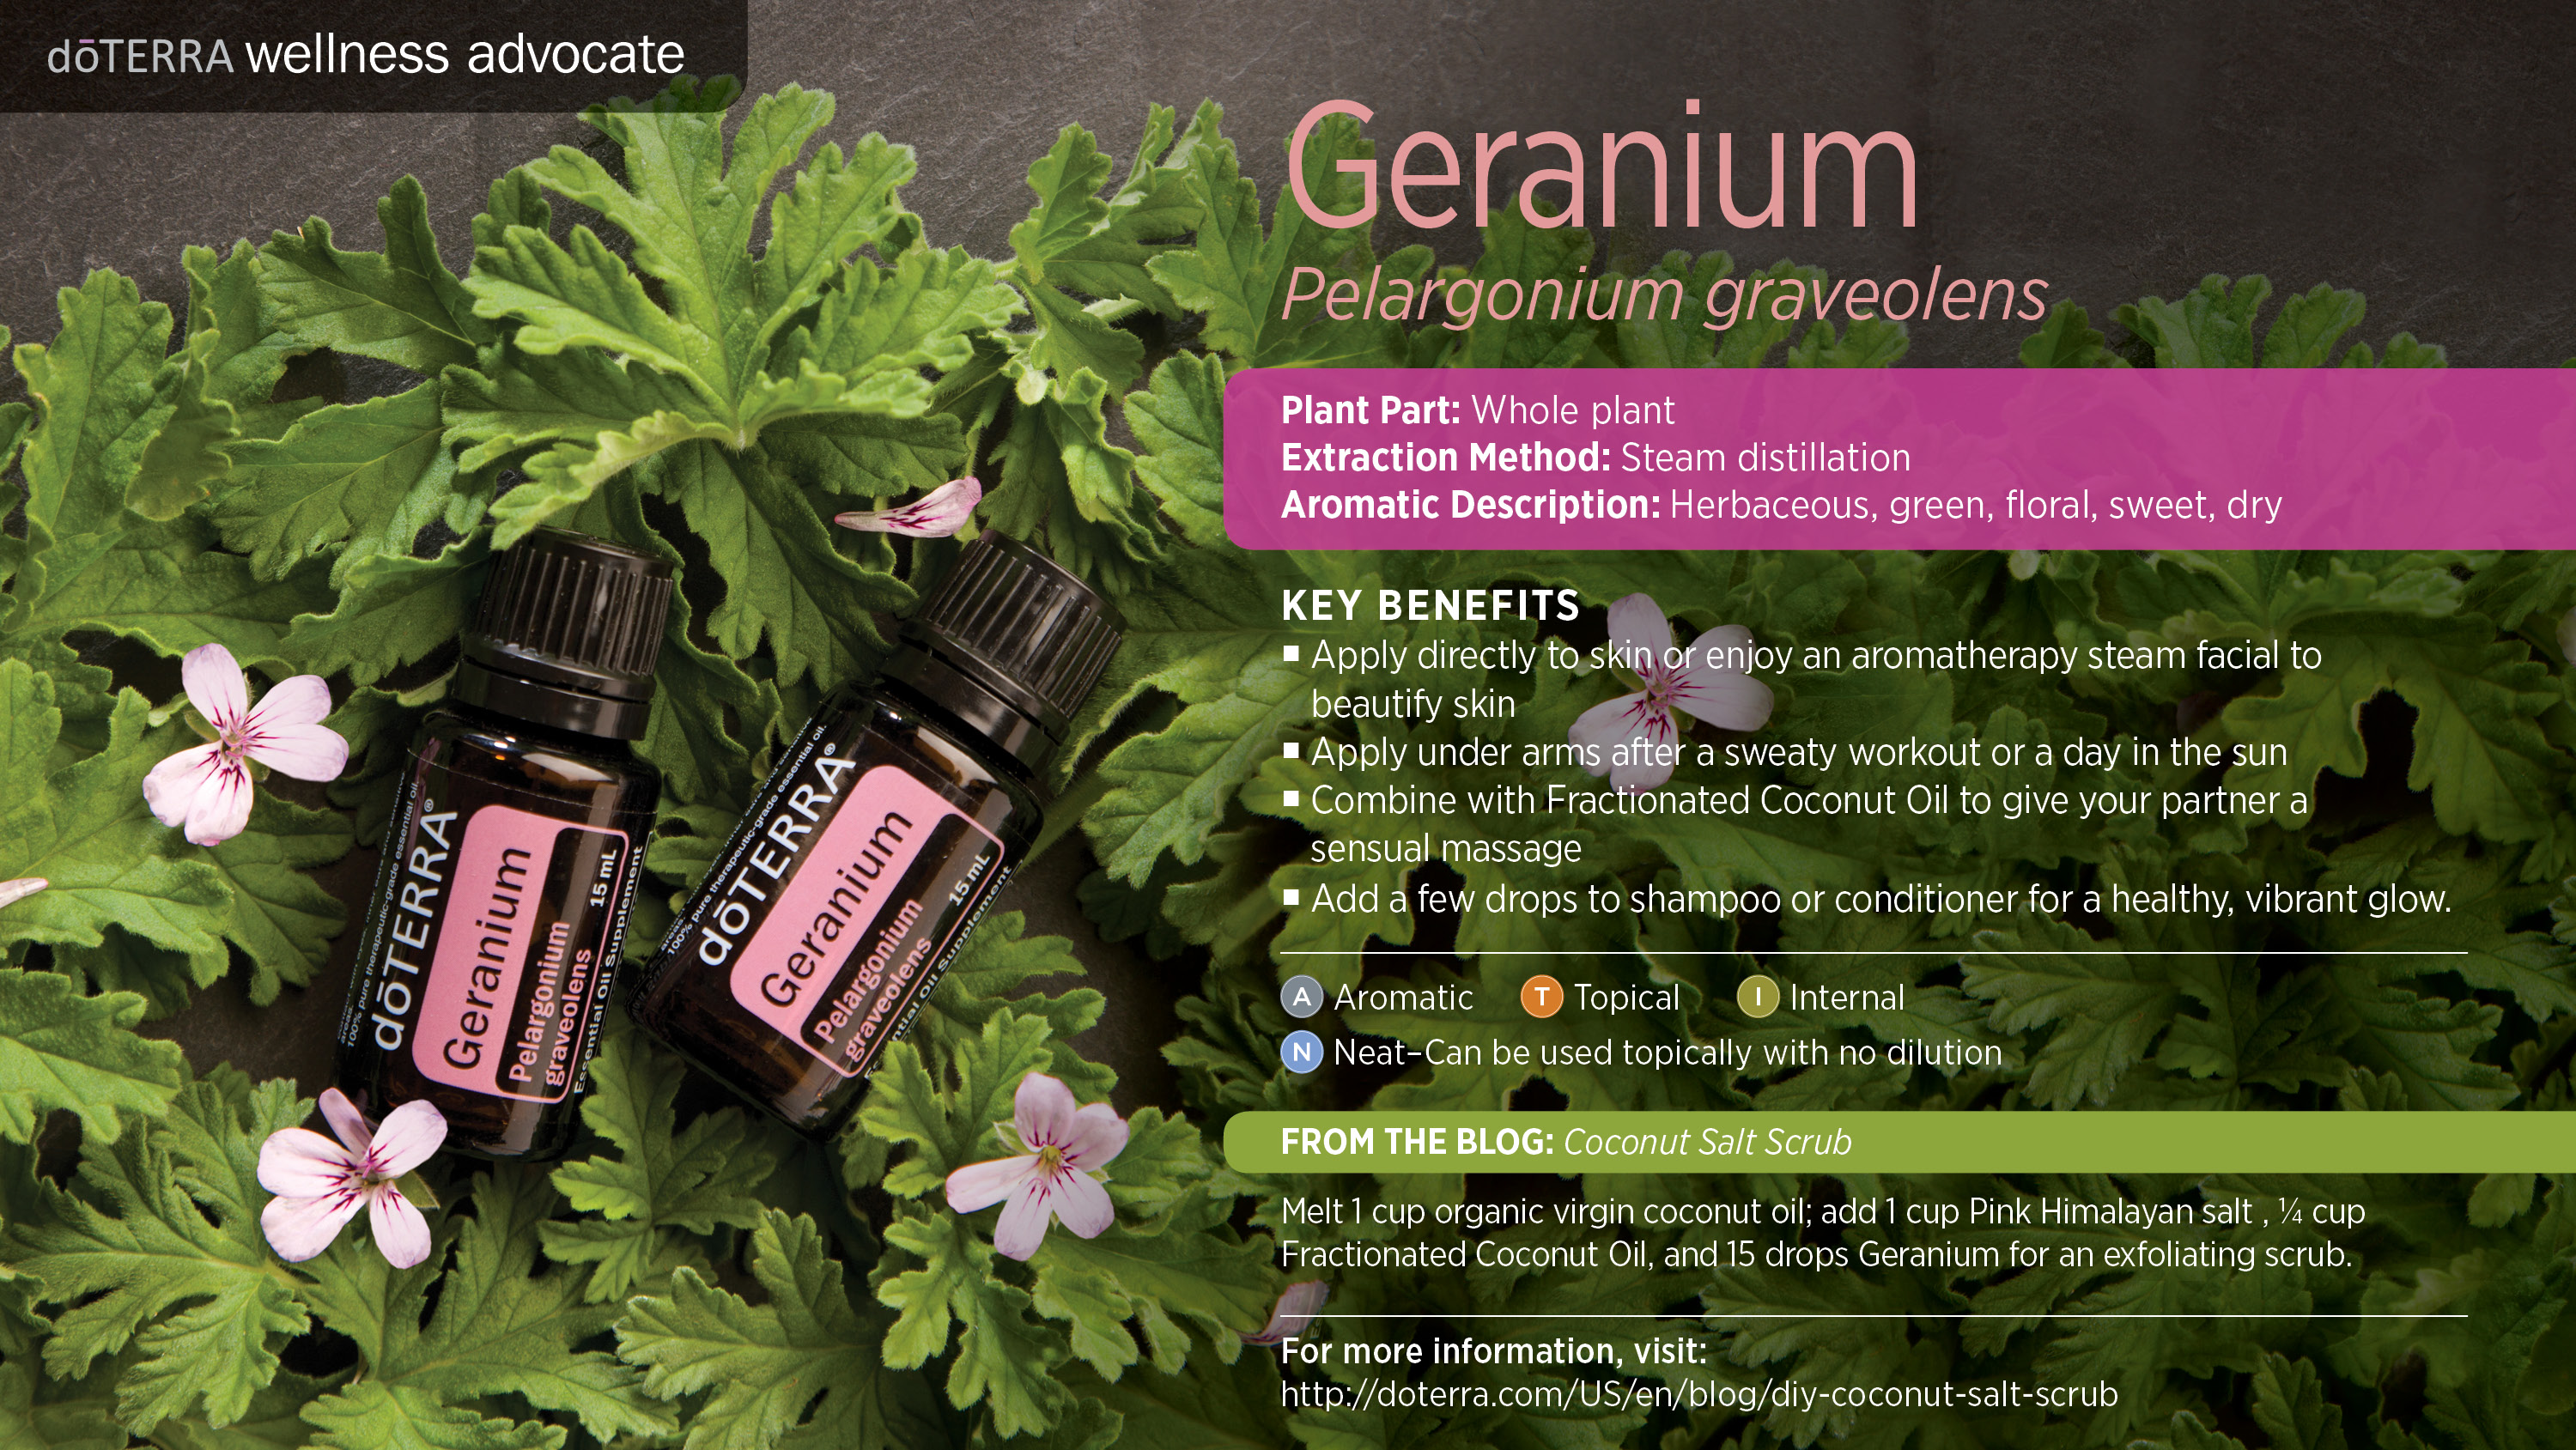 Geranium for Prani glow Purity Facial Ritual - Lymphatic facial massage